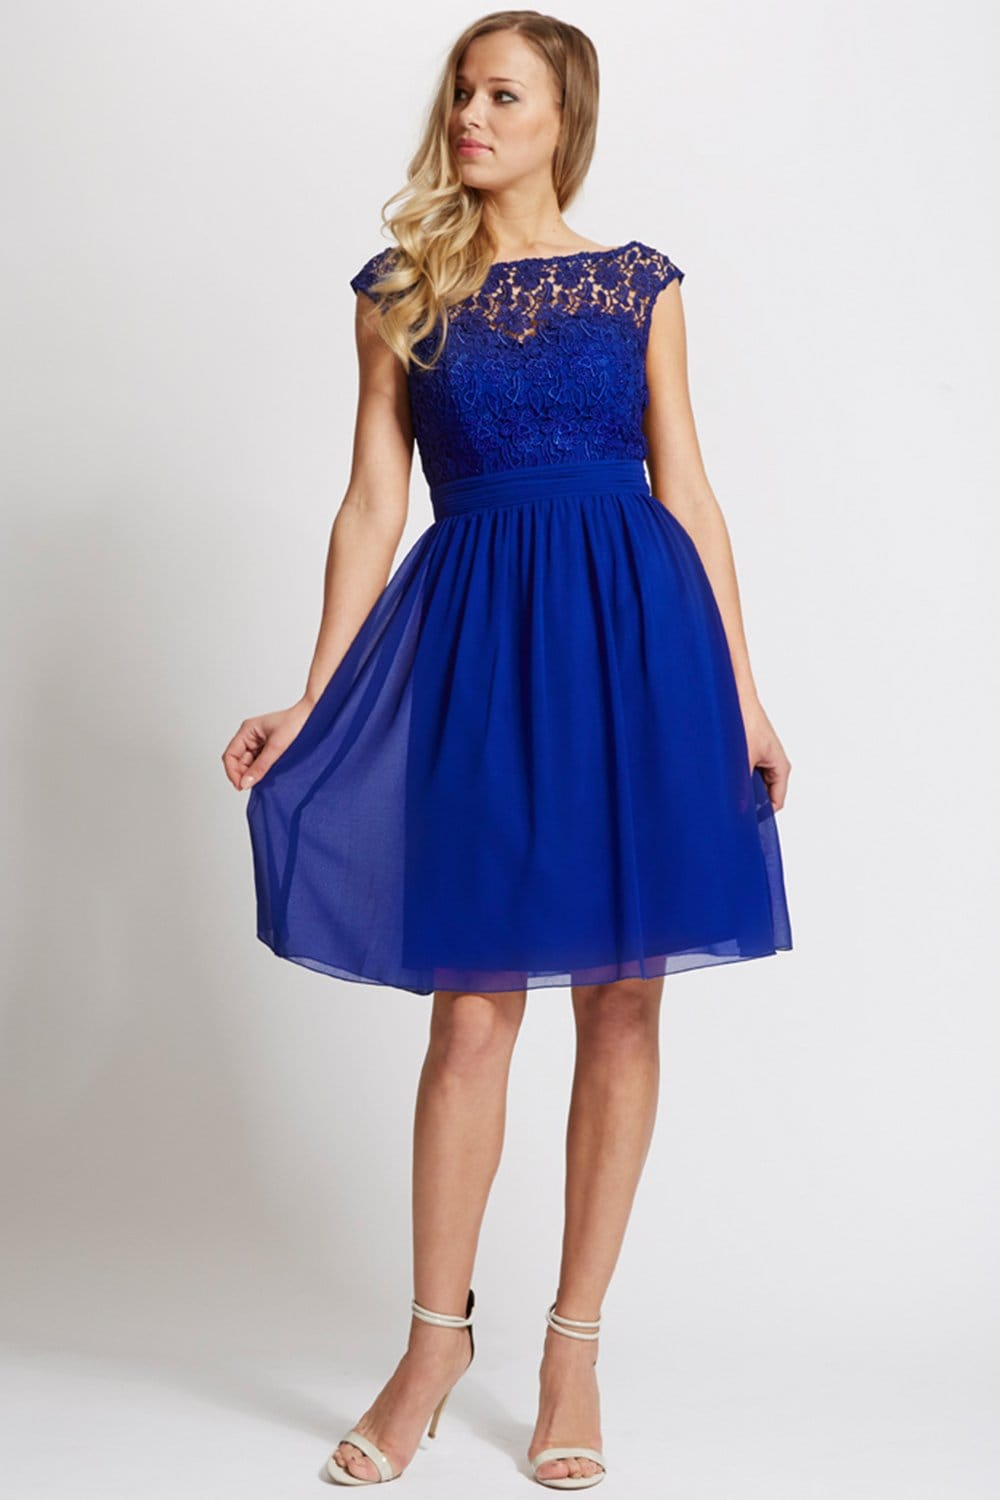 Blue Lace Bardot Dress From Little Mistress Uk